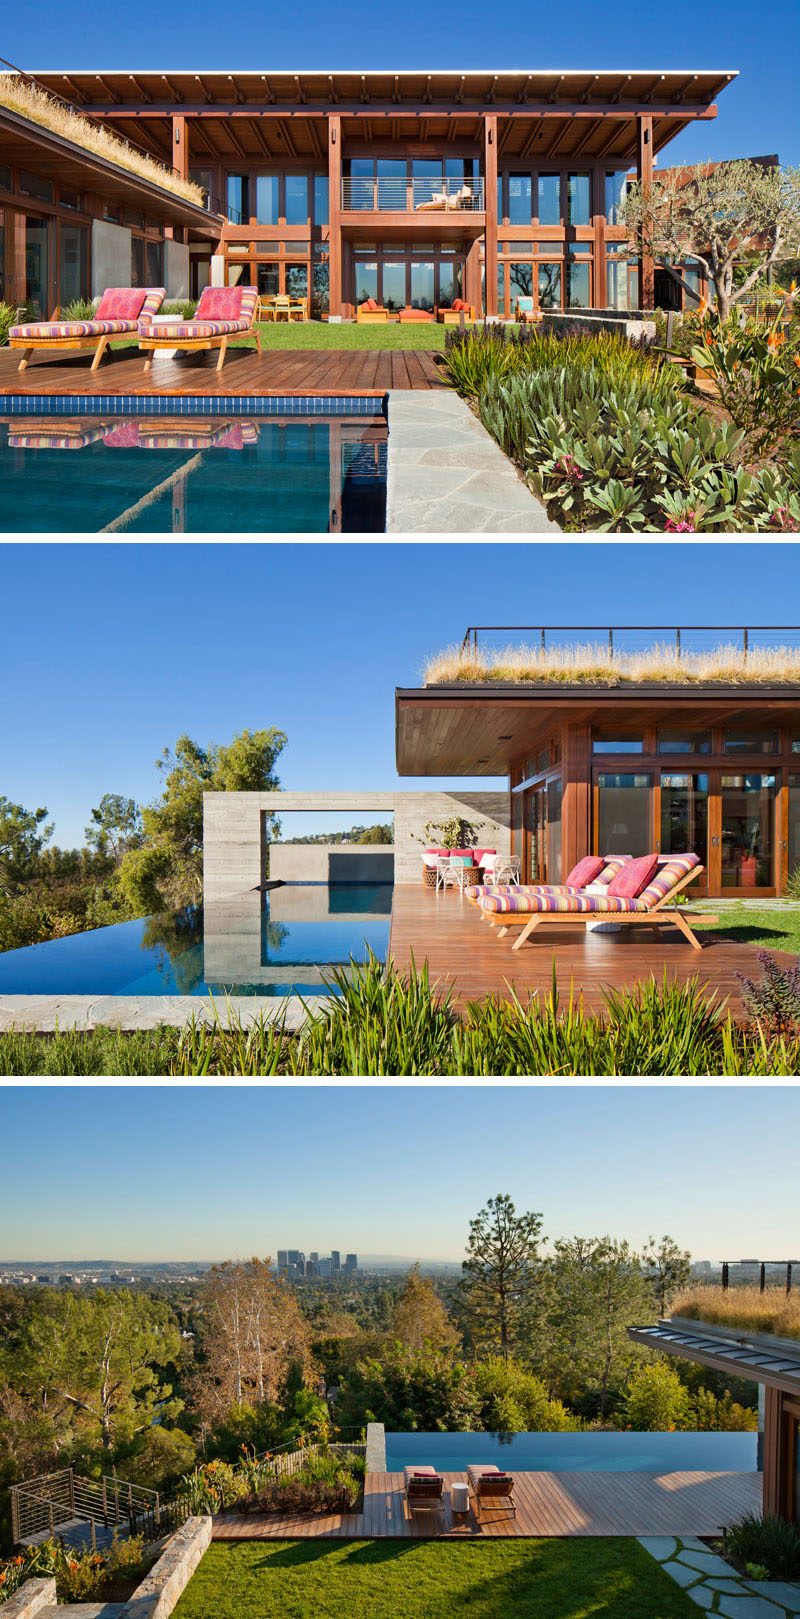 This modern house has wood framed doors that open the main living area to the backyard, where there's a lawn, a wood deck and a swimming pool, all with views of Los Angeles and the Pacific Ocean beyond. #Backyard #Architecture #SwimmingPool